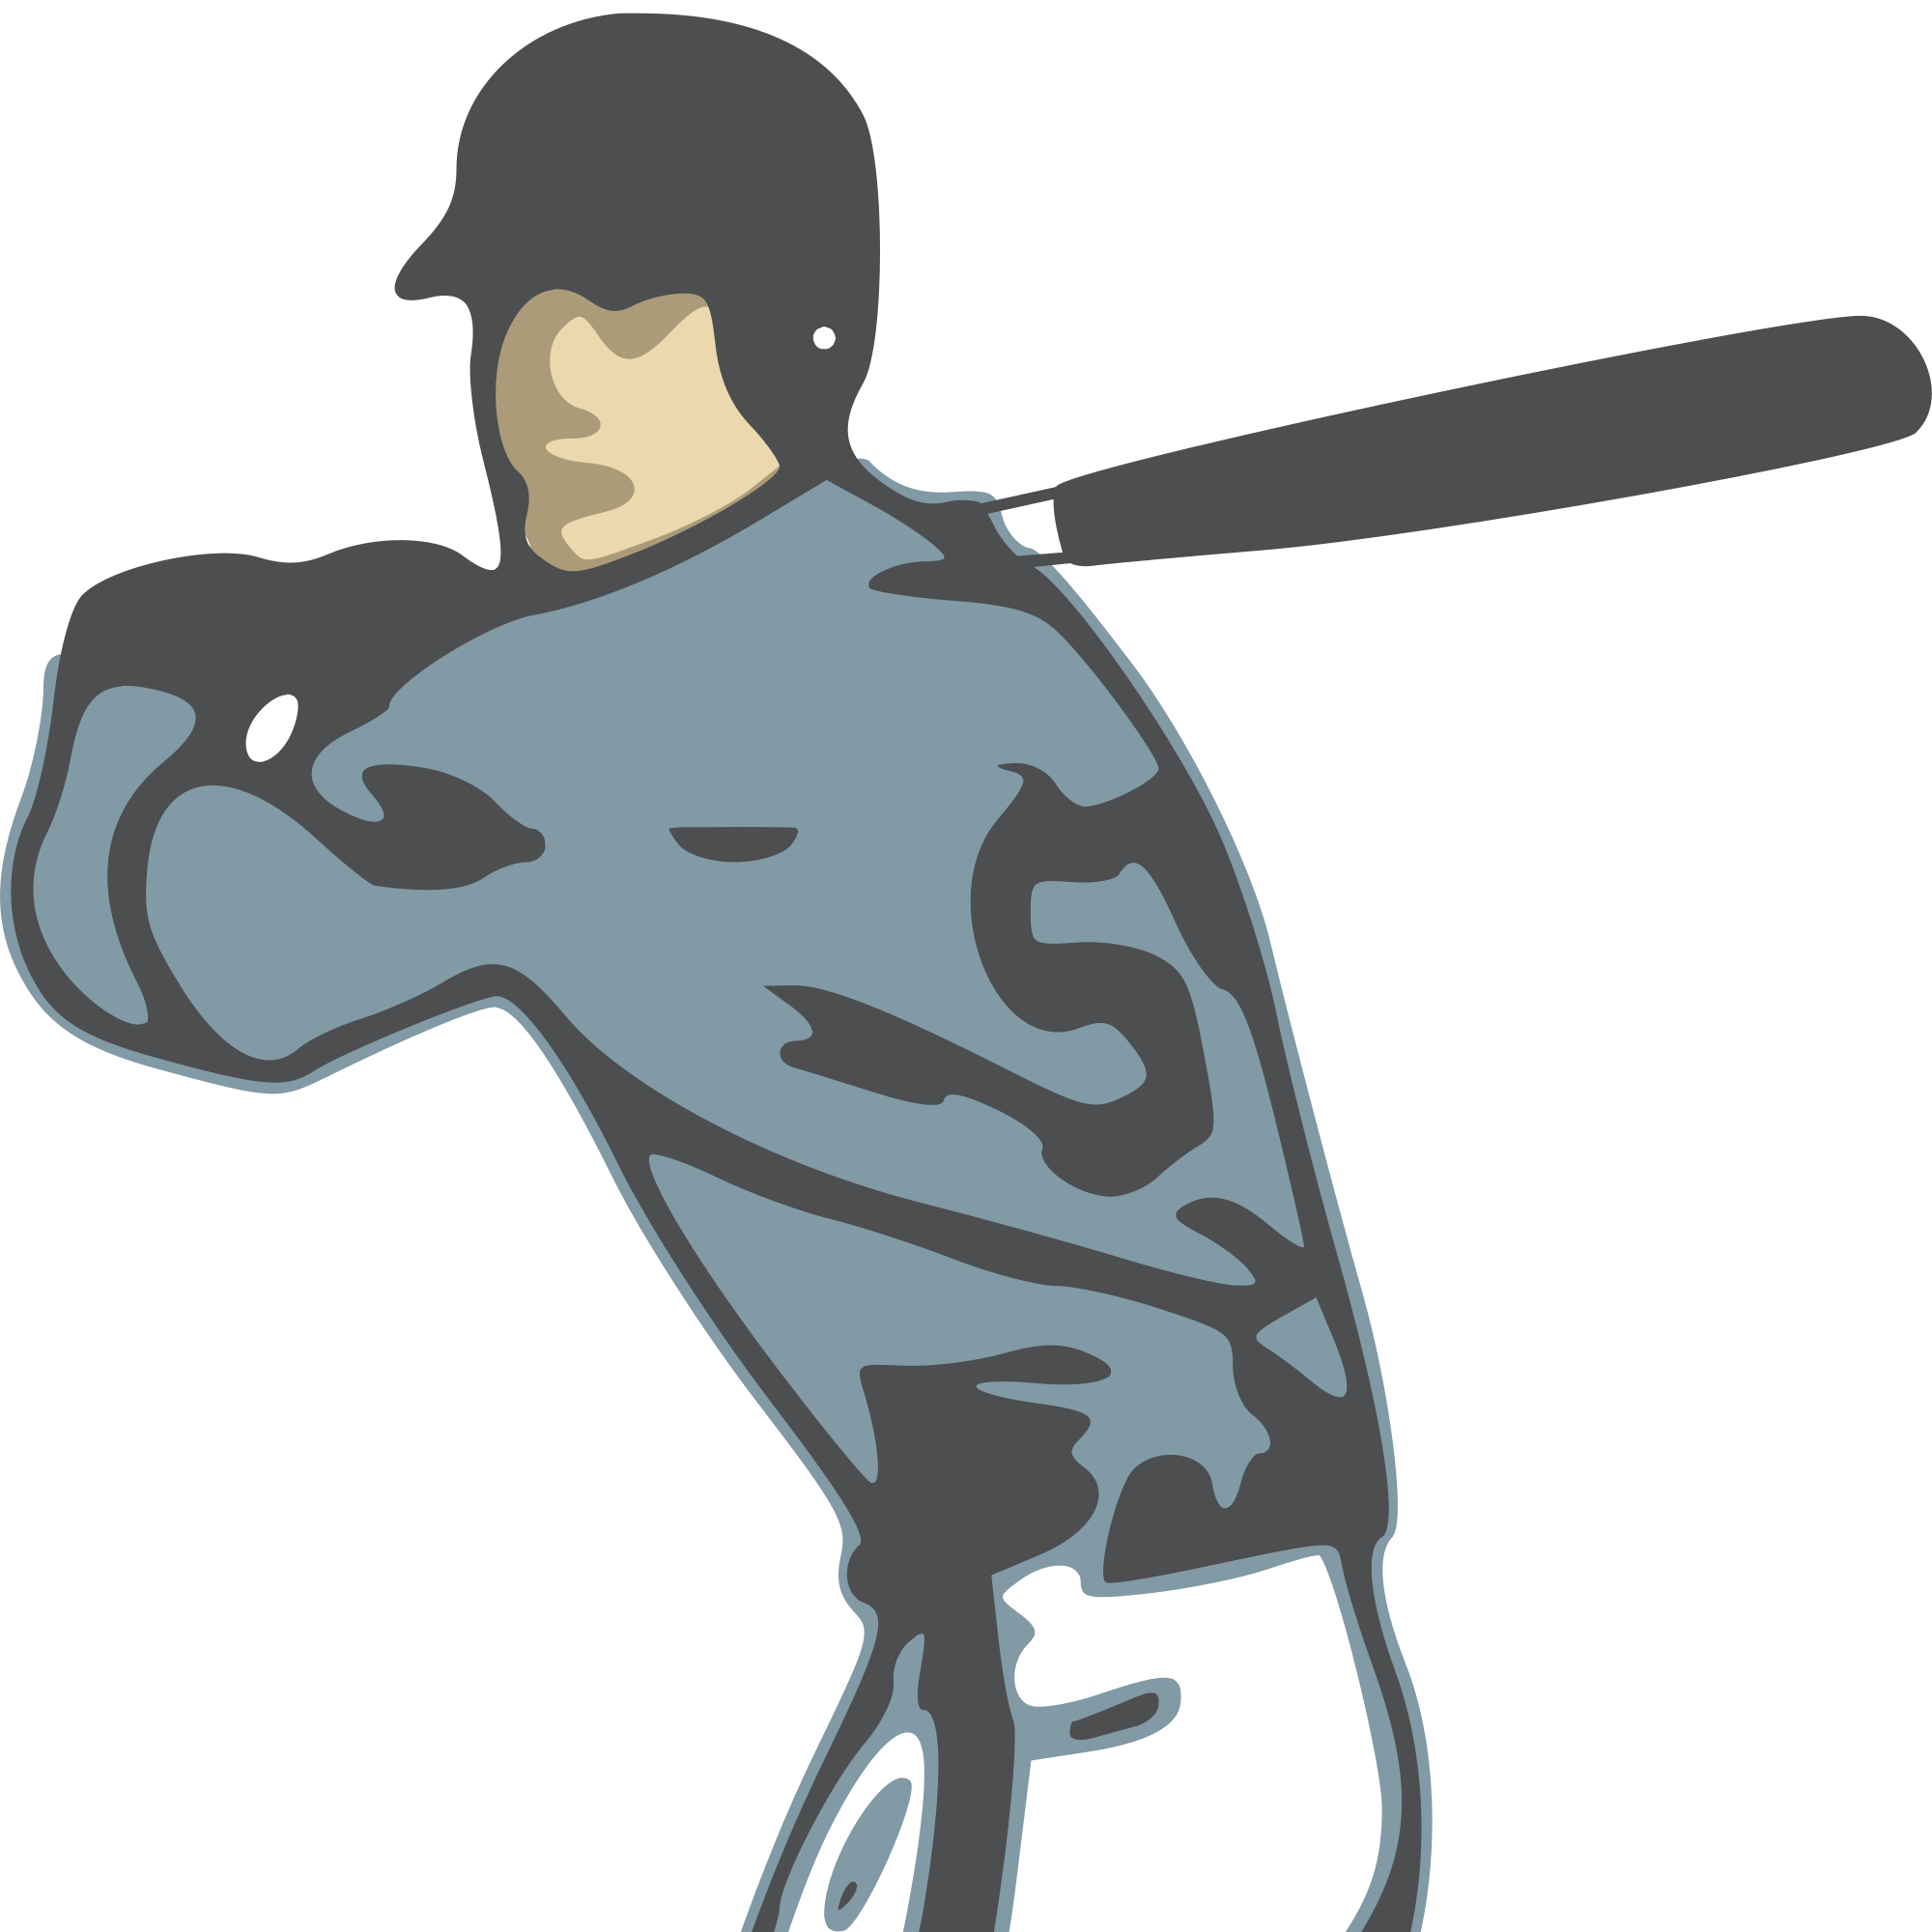 Baseball batter clipart clipart free stock Baseball Batter Clipart at GetDrawings.com | Free for personal use ... clipart free stock